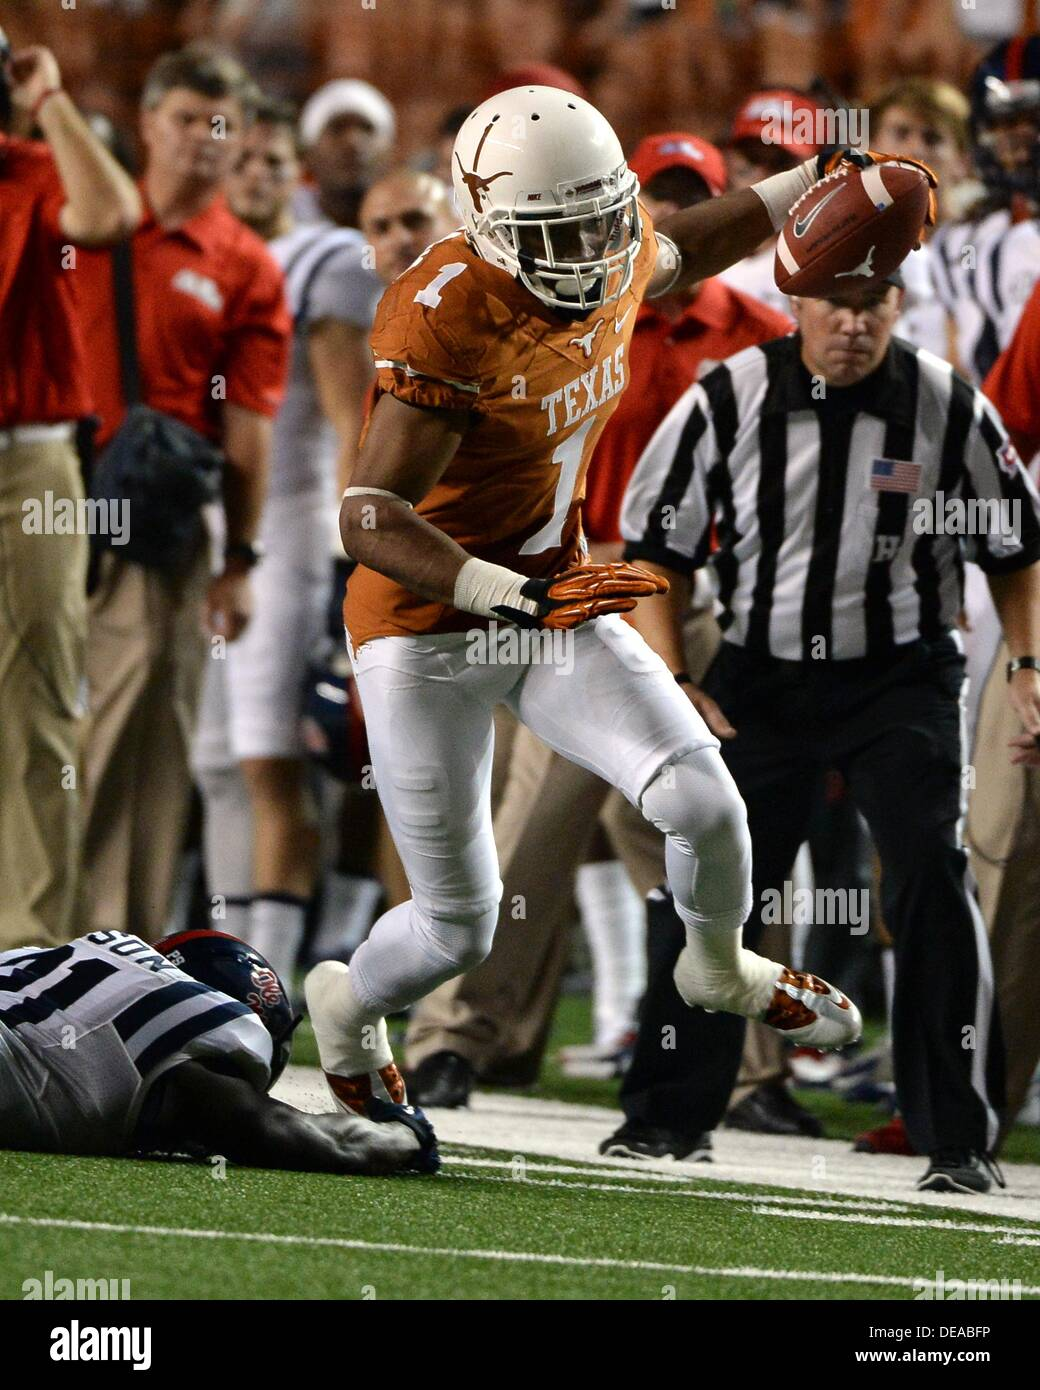 Sept 14 2013 Mike Davis 1 Of The Texas Longhorns In Action Vs